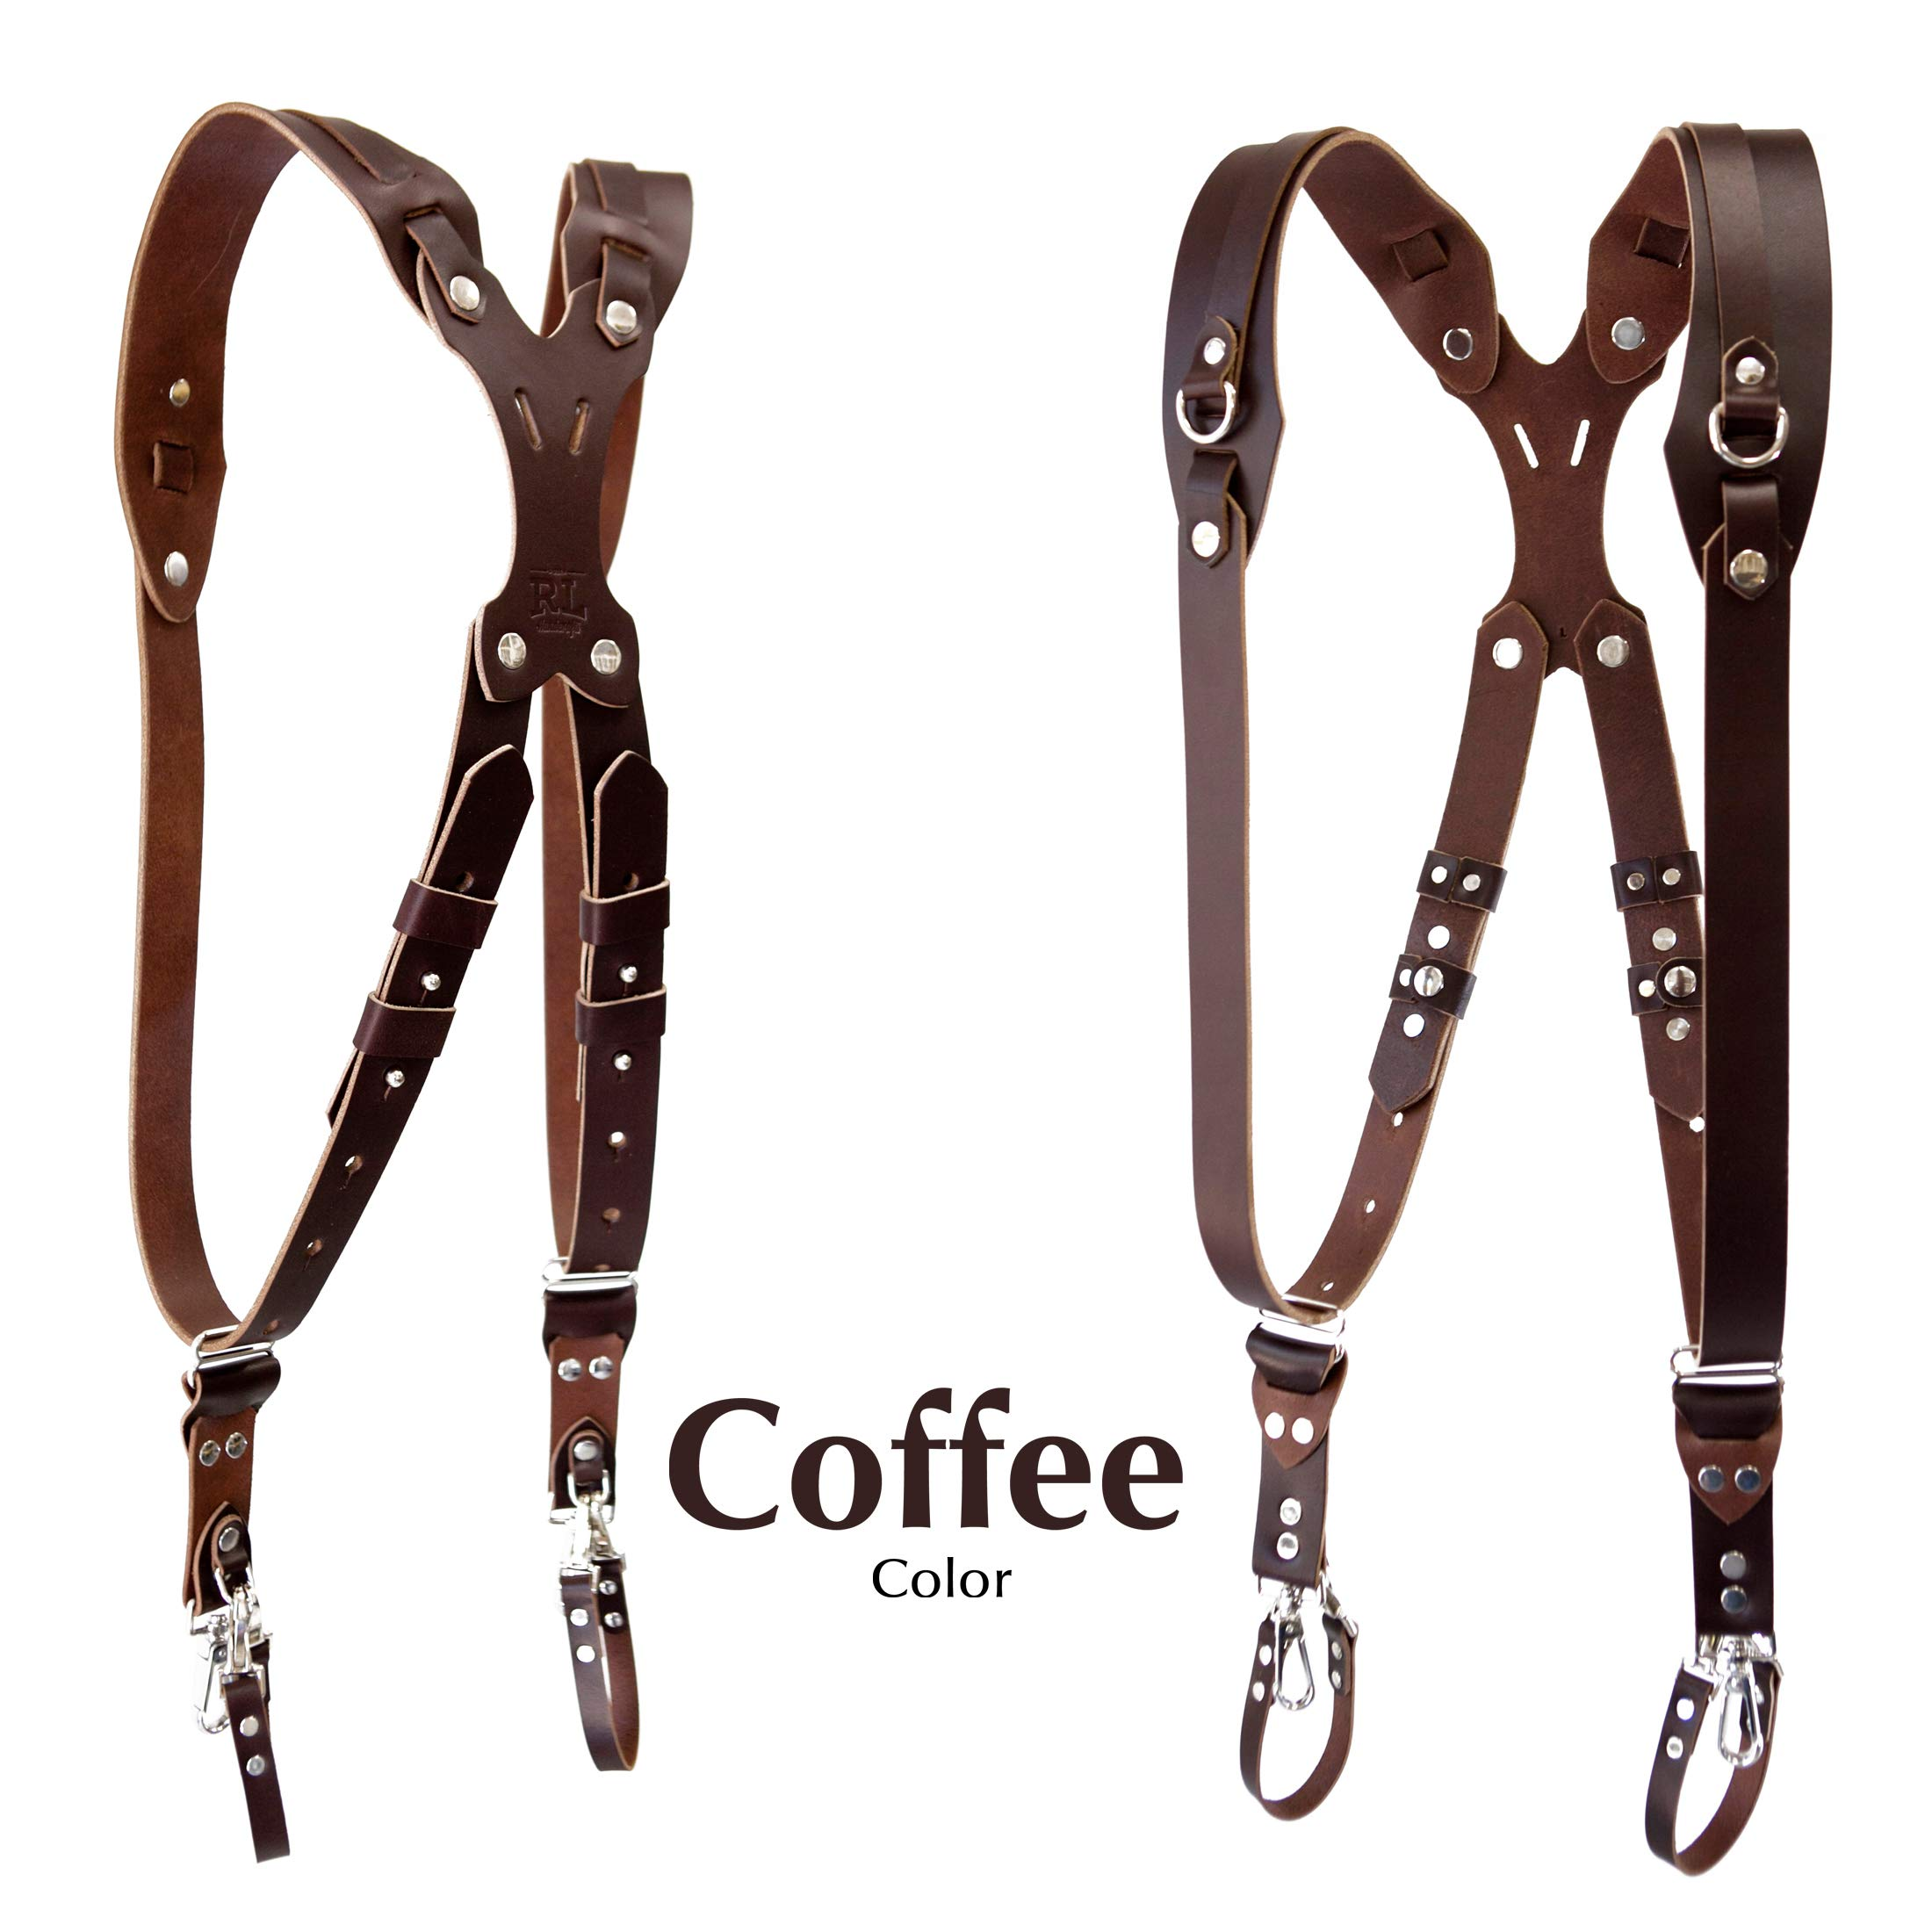 Clydesdale Pro-Dual Handmade Leather Camera Harness, Sling & Strap RL Handcrafts. DLSR, Mirrorless, Point & Shoot Made in The USA (Coffee, Small) by Republic Leather Company (Image #1)